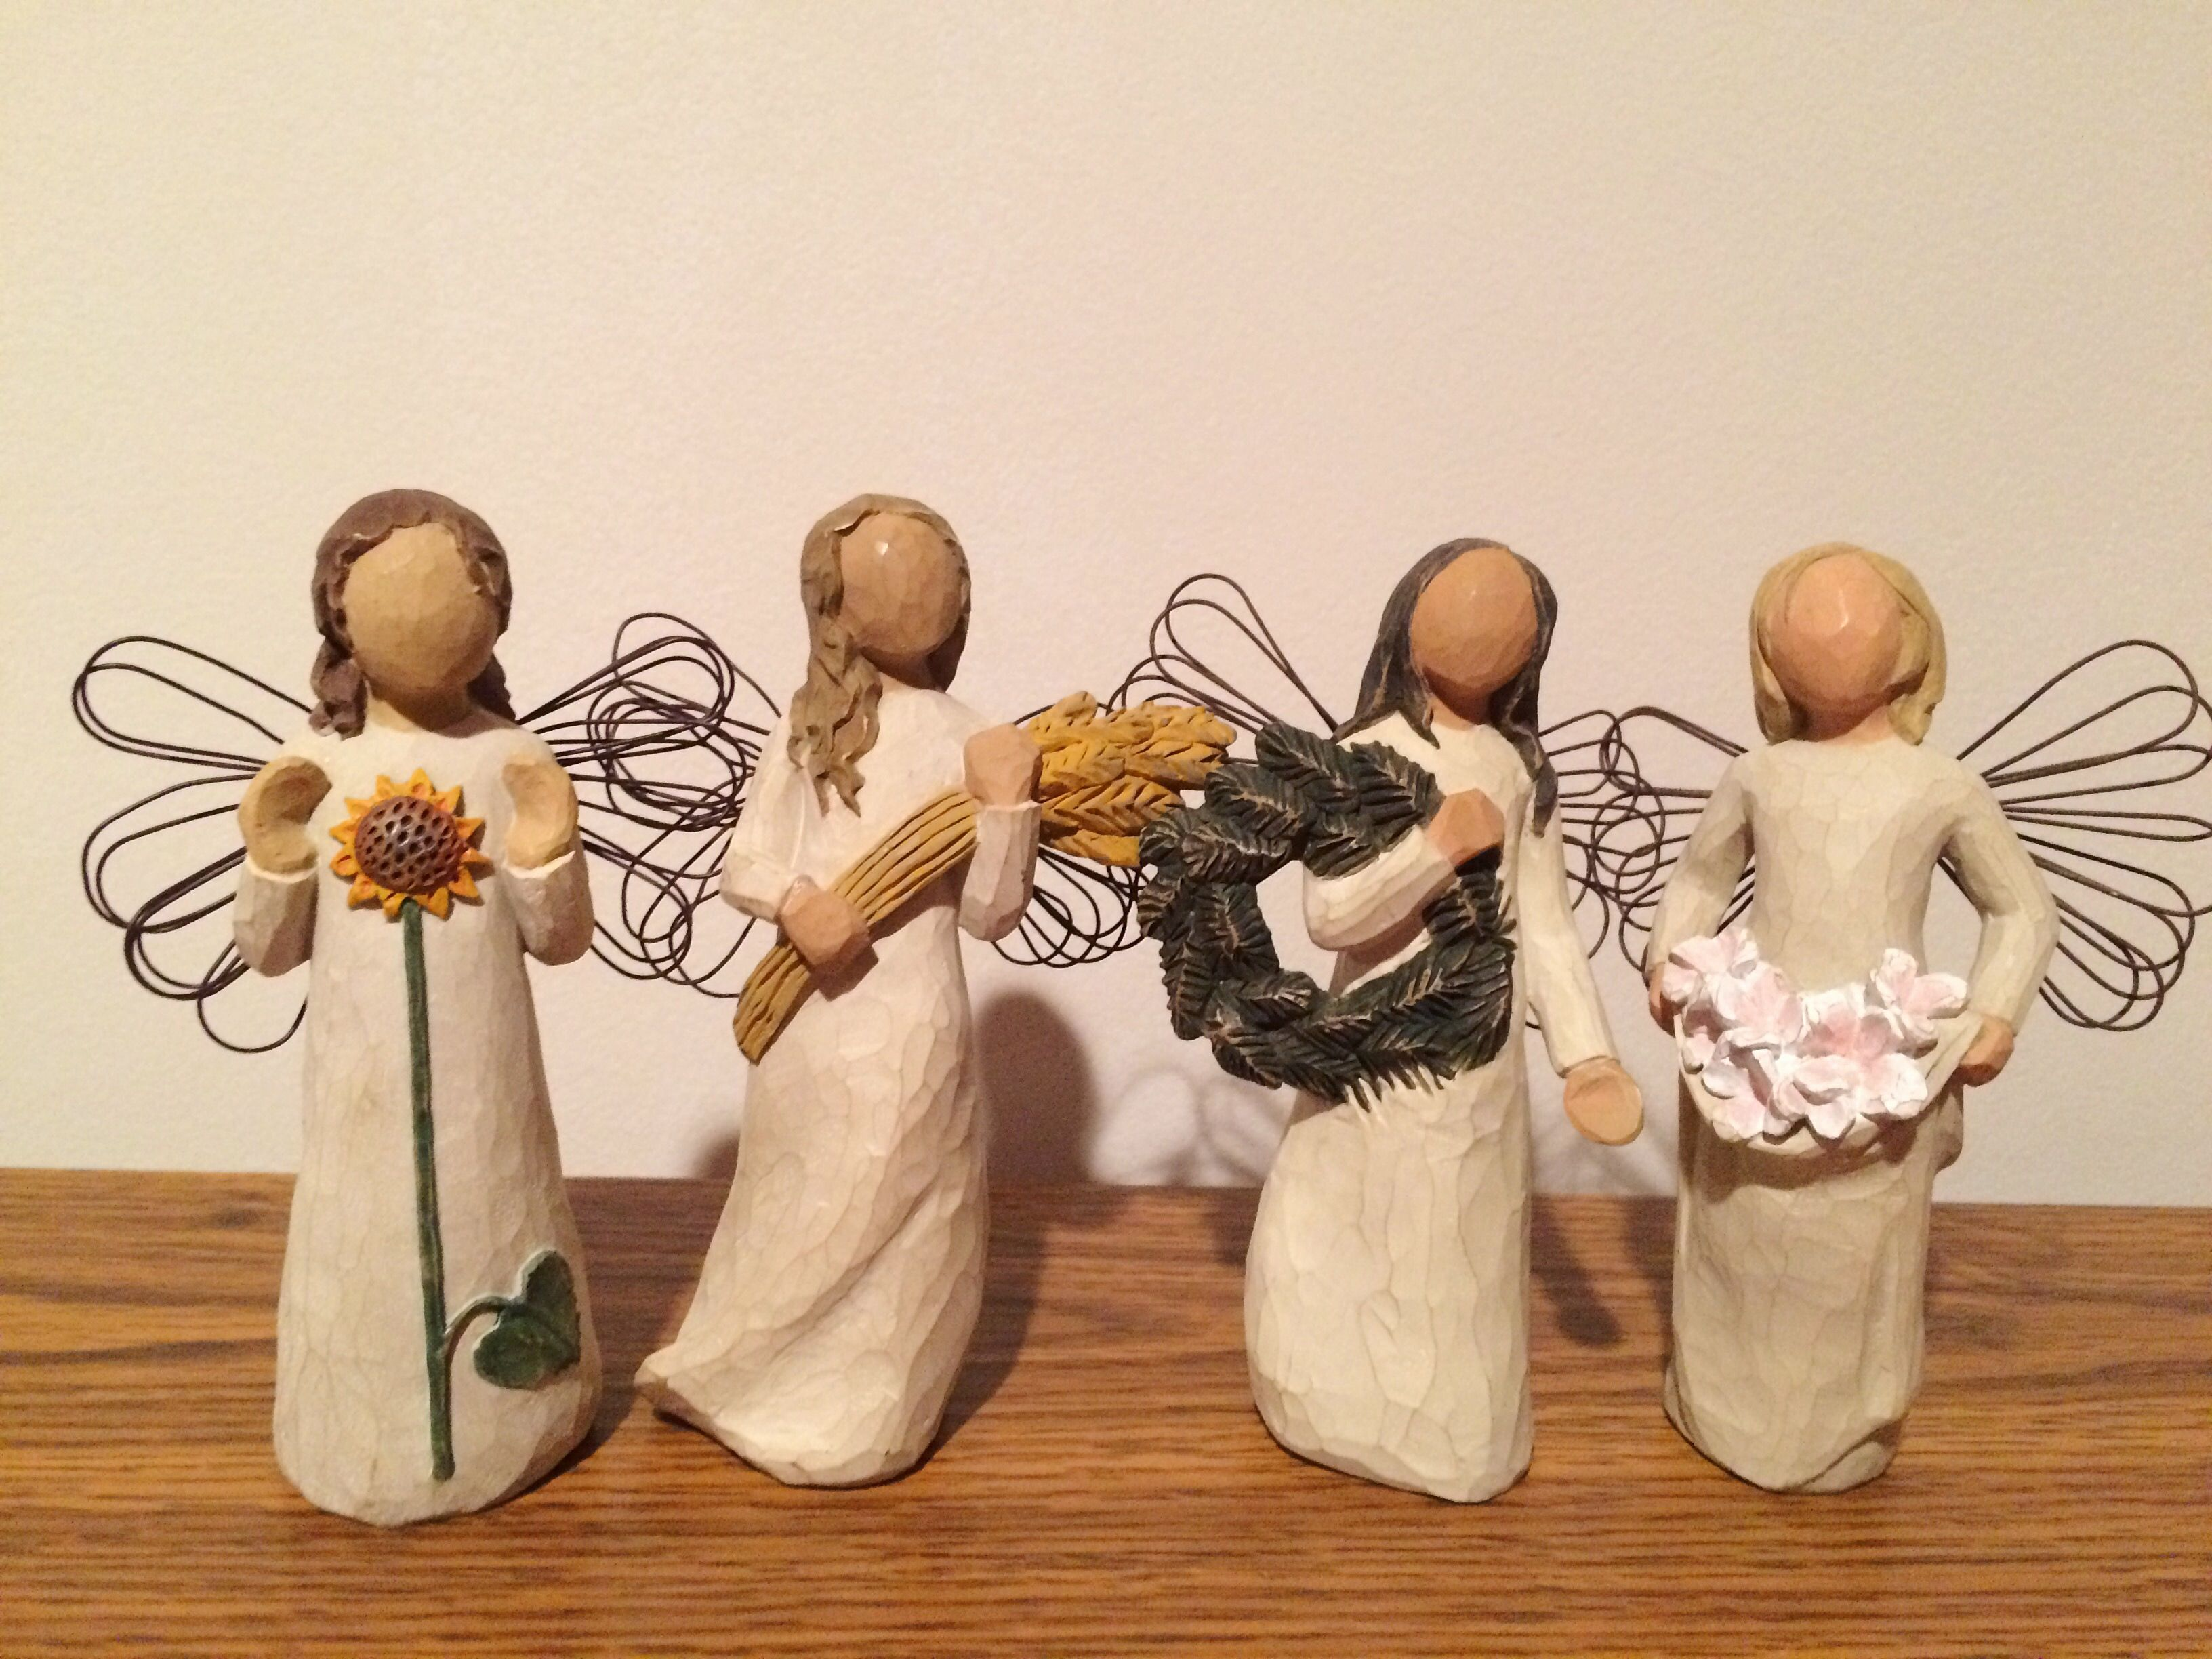 Willowtree Figurines Angel Of Summer Angel Of Autumn Angel Of Winter Angel Of Spring Willow Tree Figurines Willow Tree Figures Willow Tree Angels